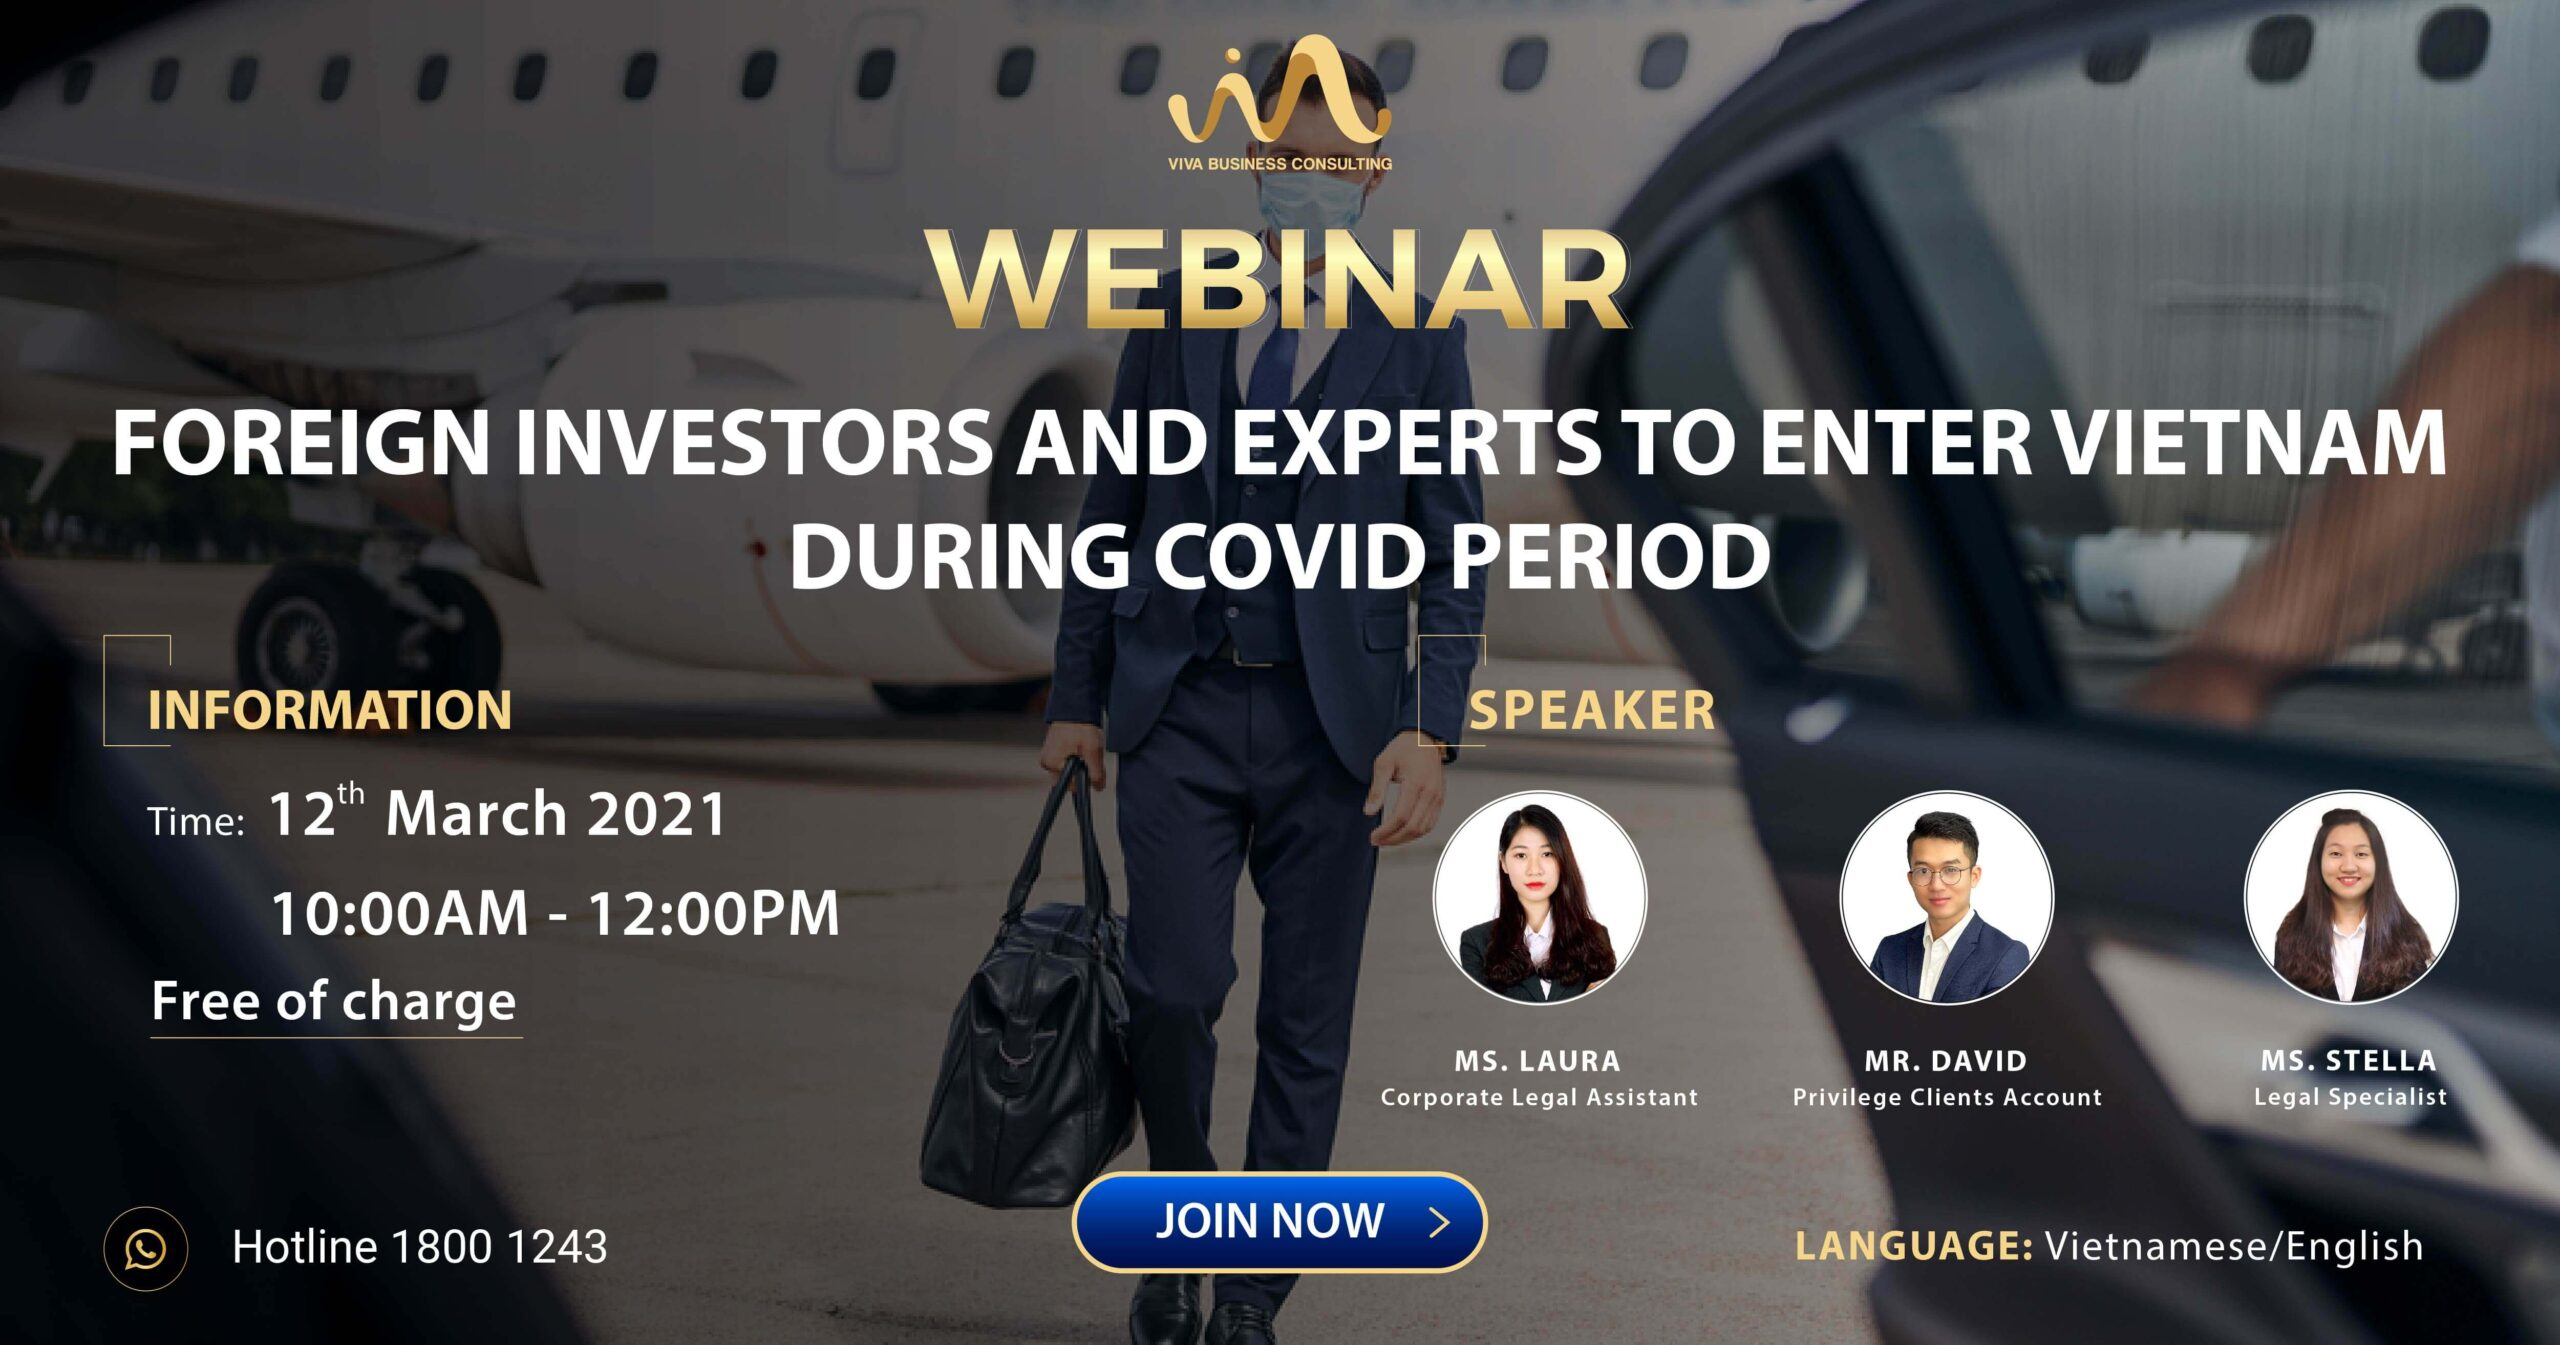 [WEBINAR] Foreign investors and experts to enter Vietnam during covid period